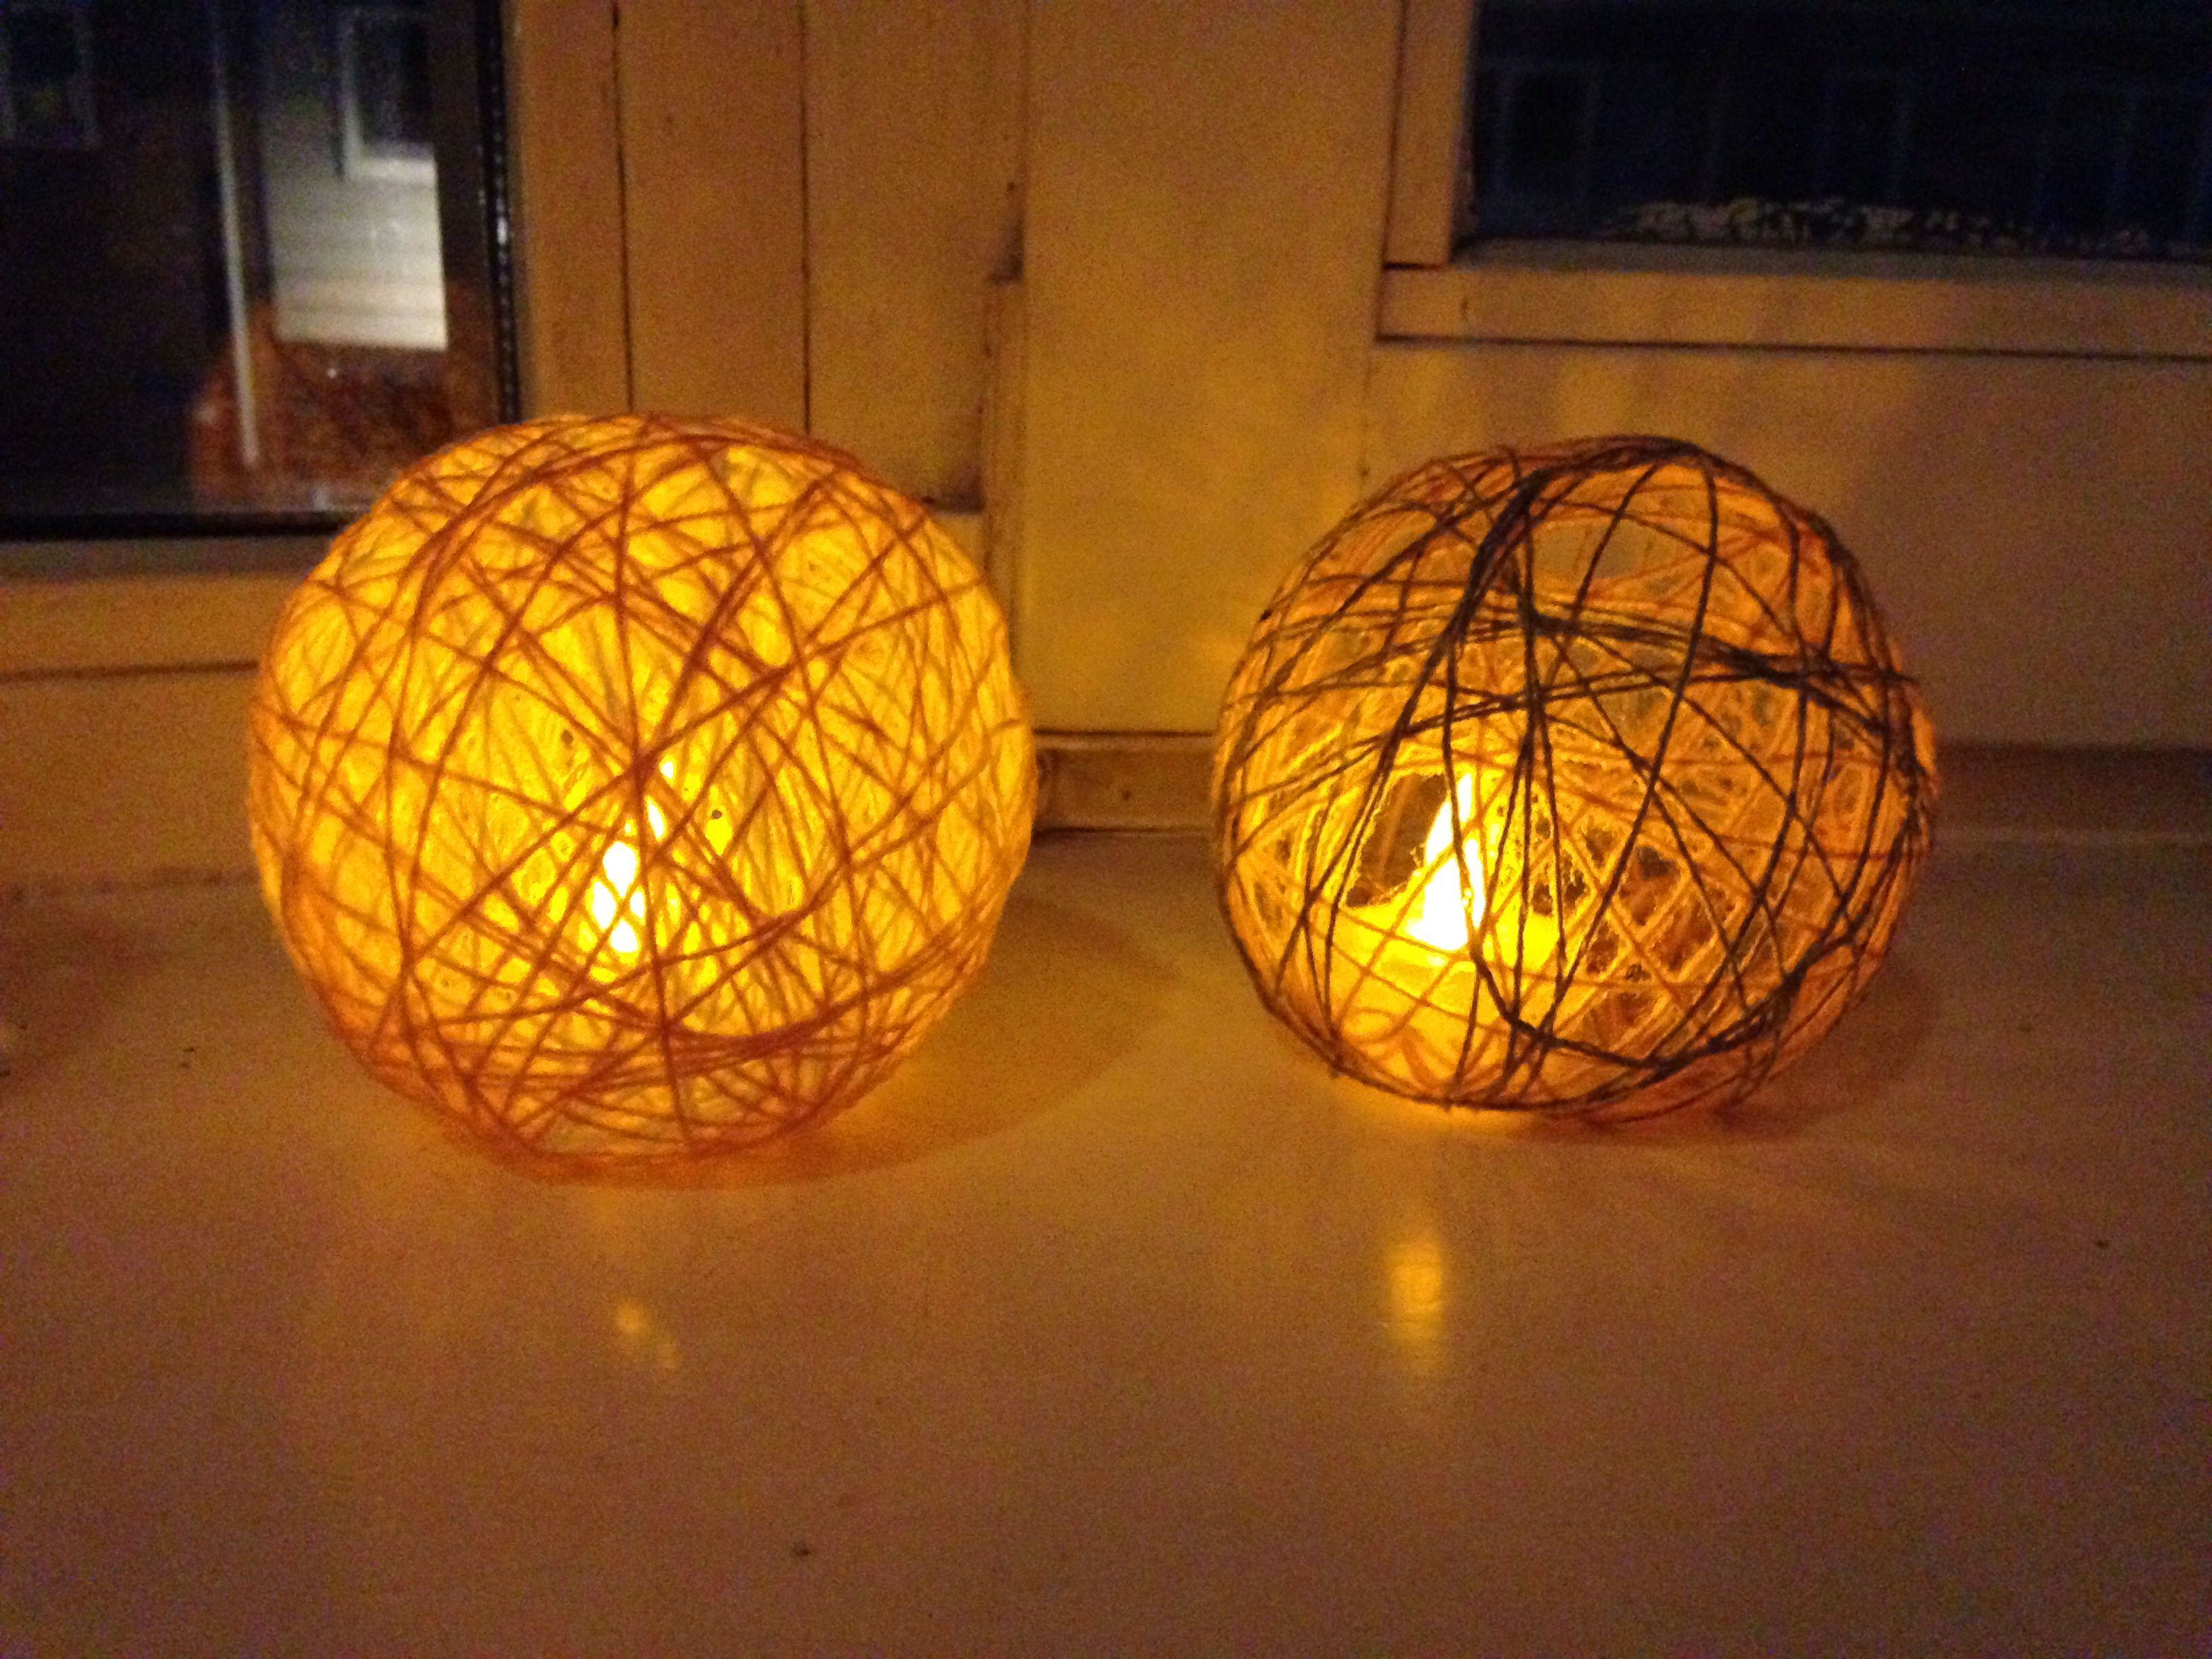 Homemade Lamp Ideas homemade lamps | decoration ideas | pinterest | homemade lamps and